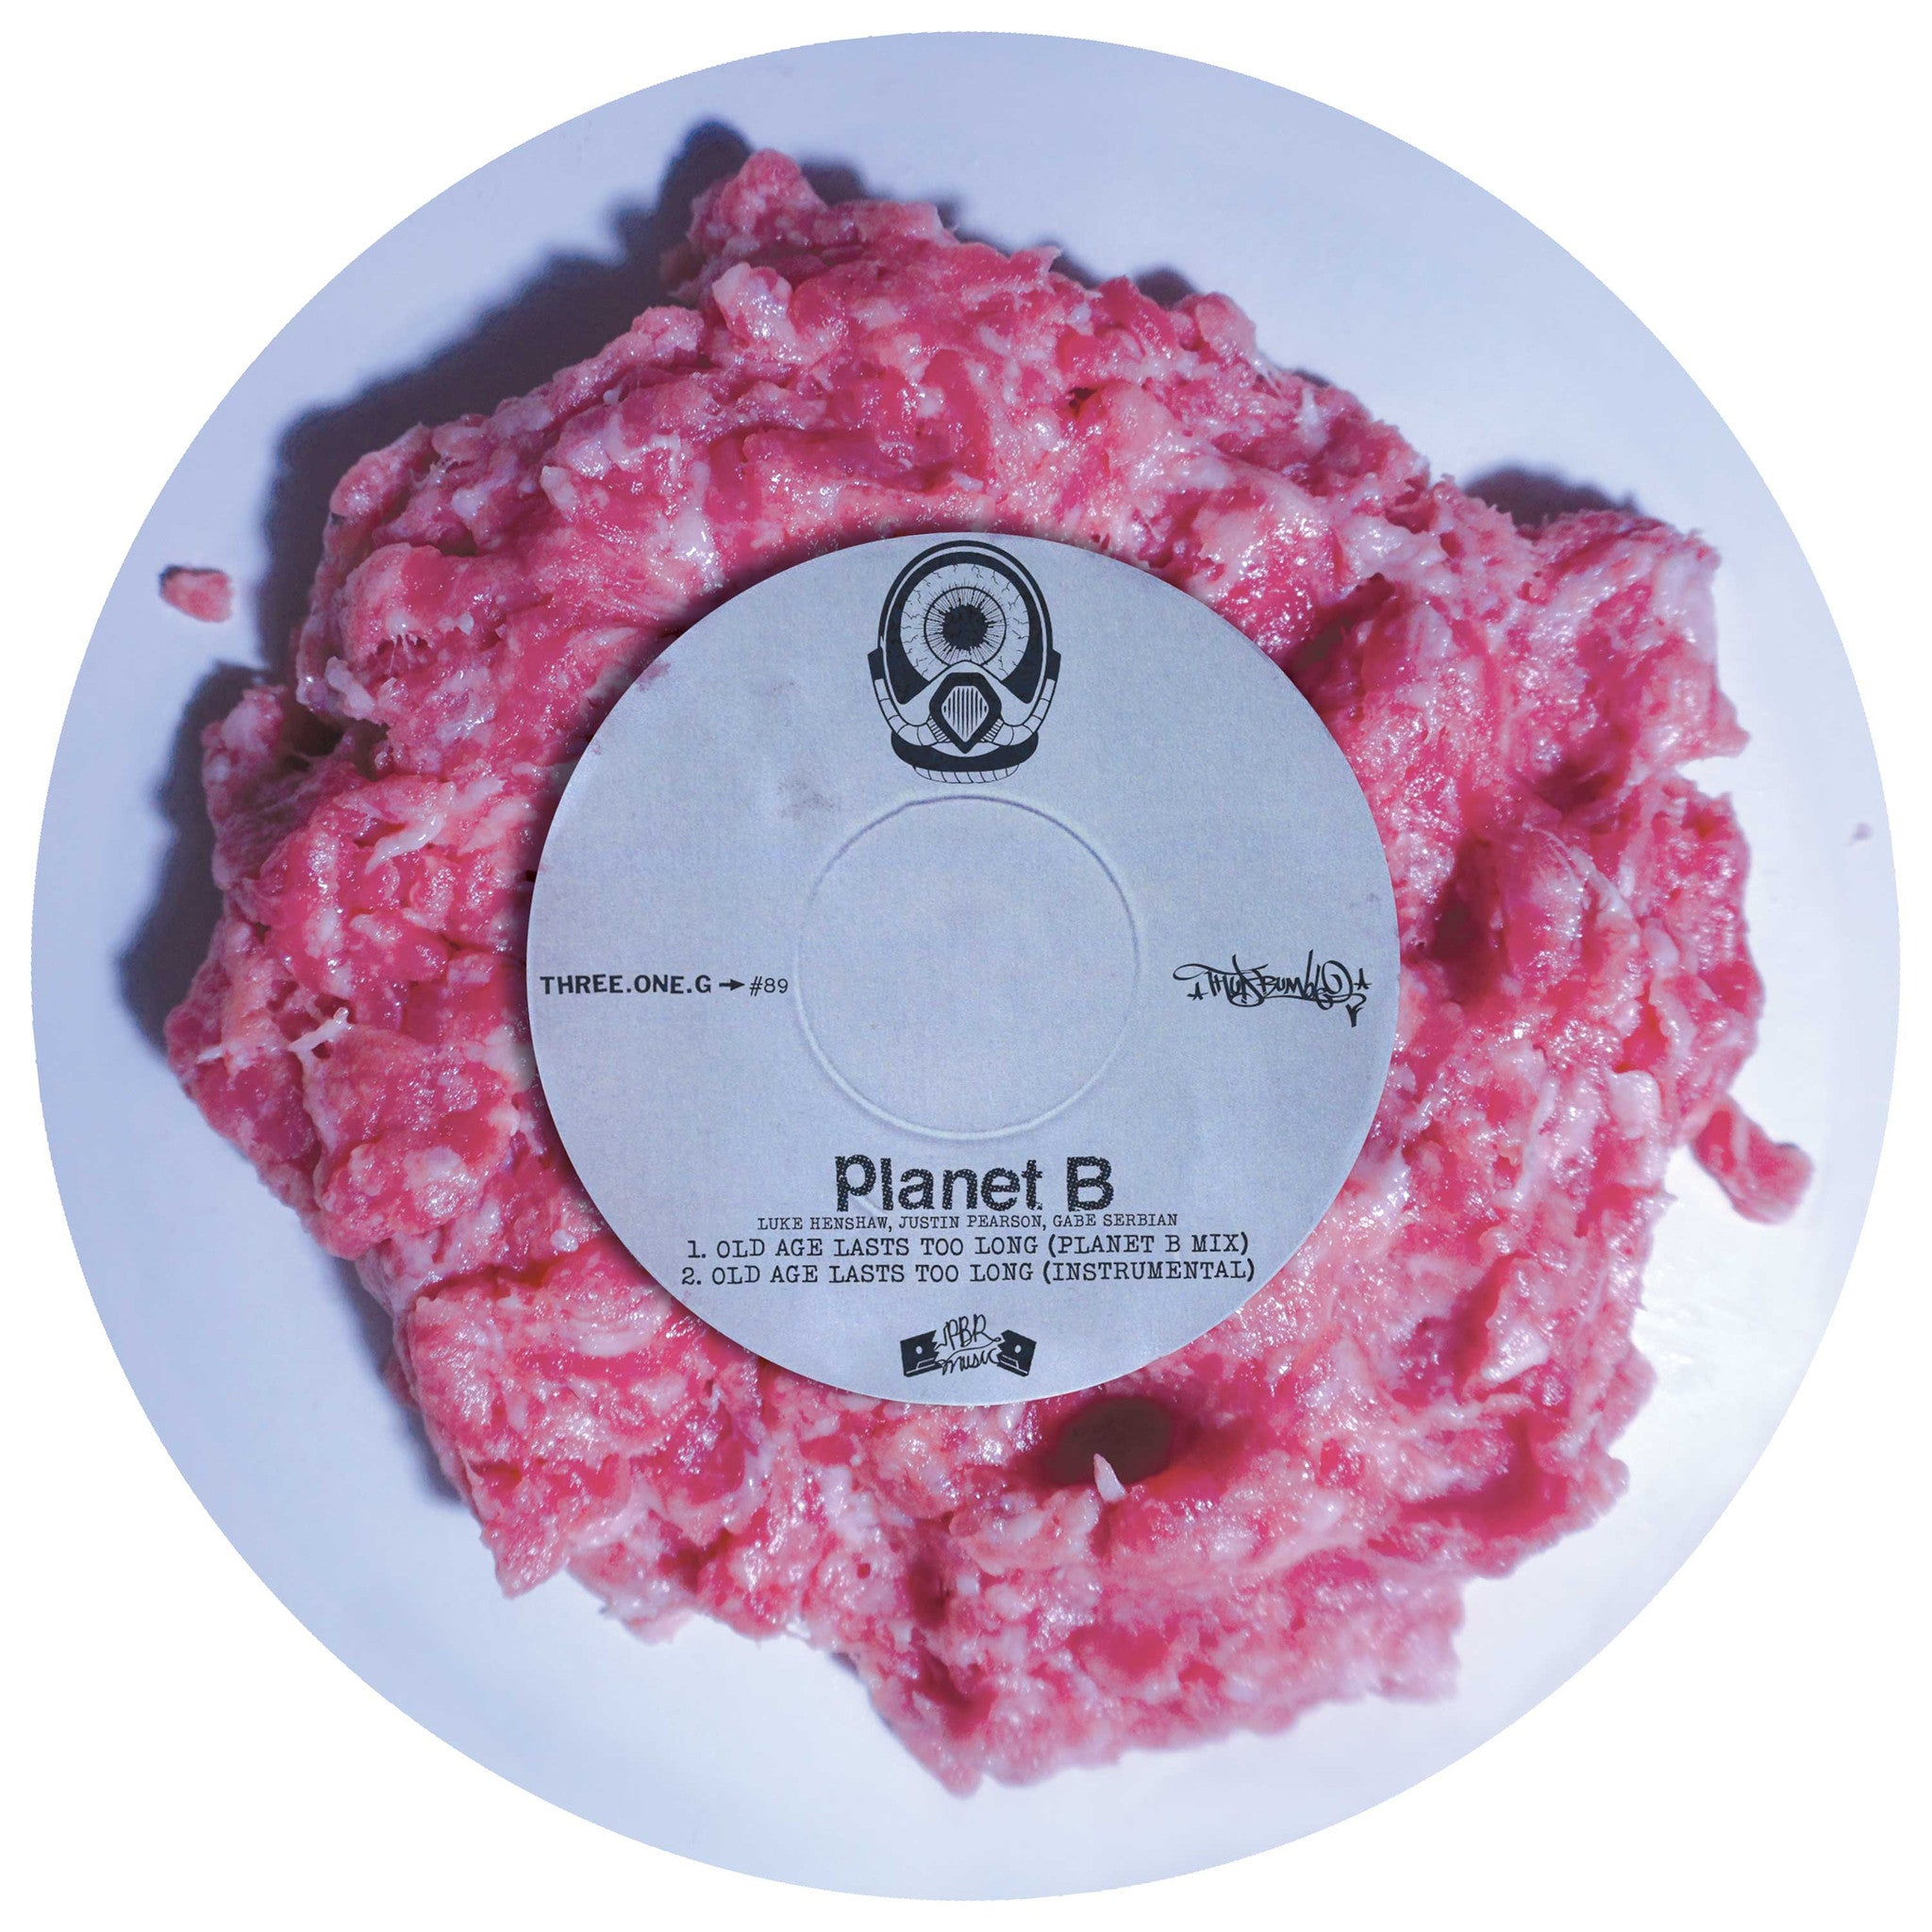 FREE DOWNLOAD: Invisibl Skratch Piklz x Planet B a PBR Music special project